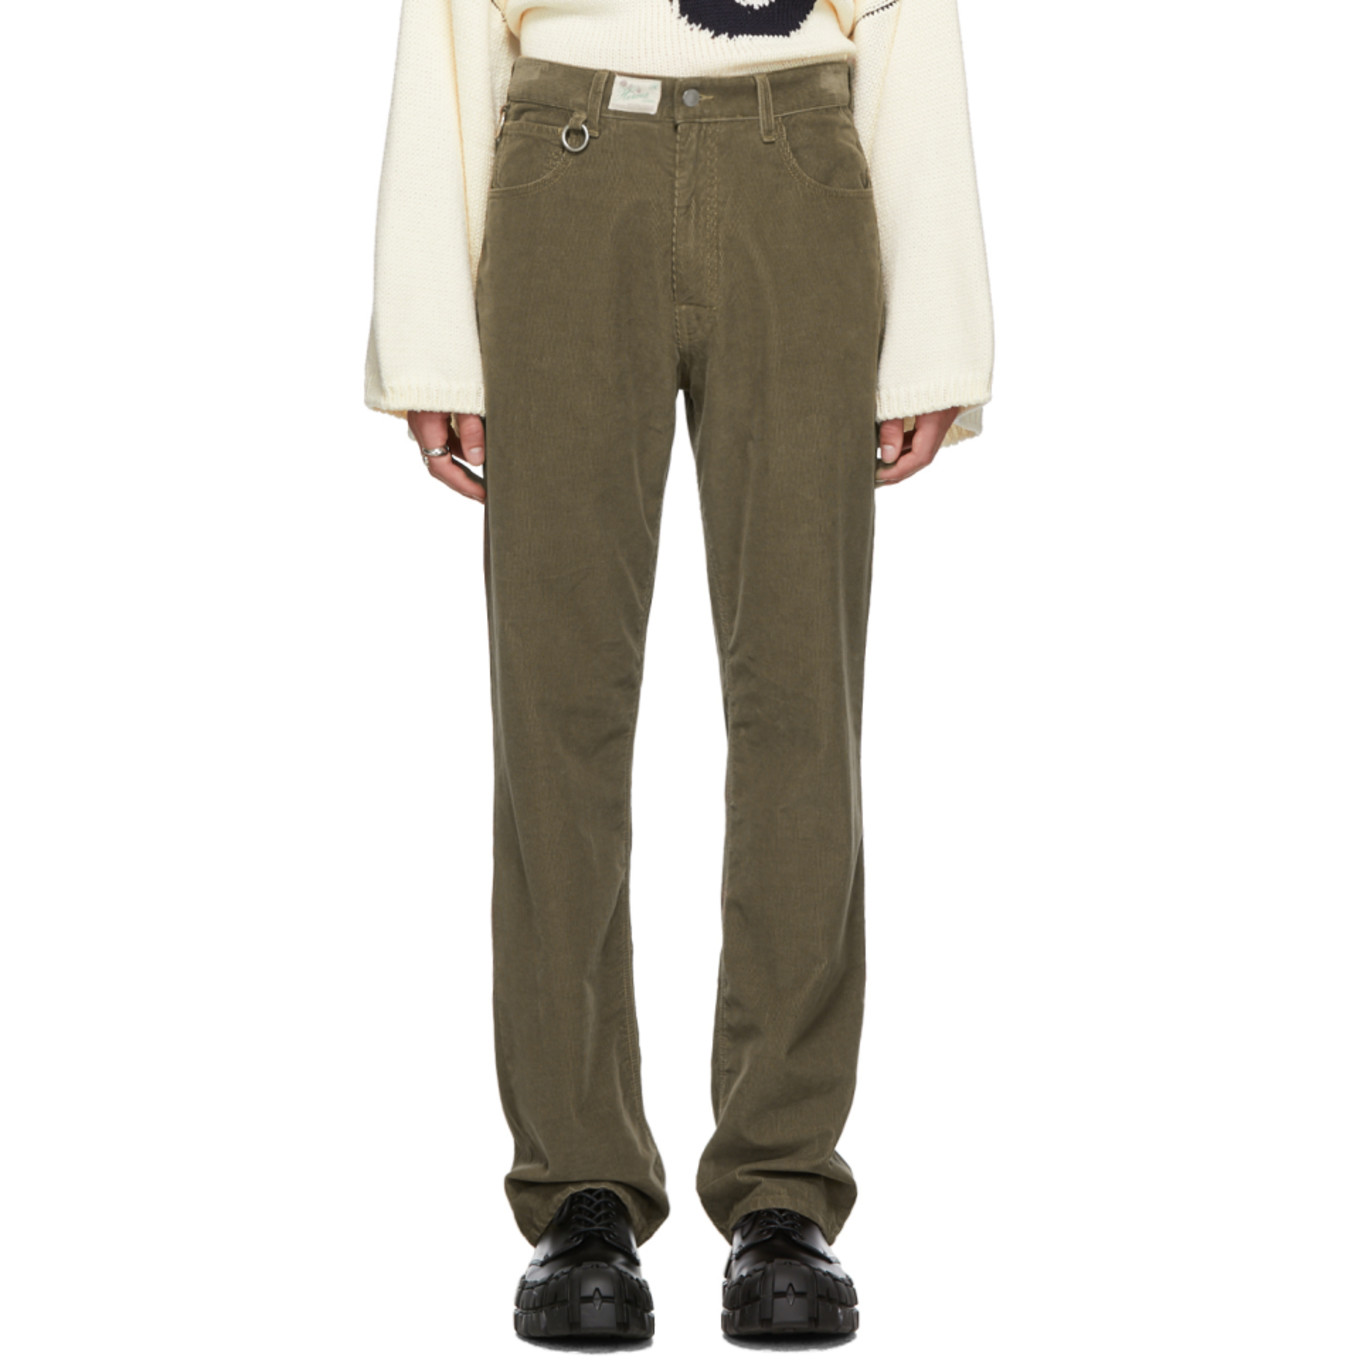 Brown Heroes & Losers Relaxed Fit Trousers by Raf Simons